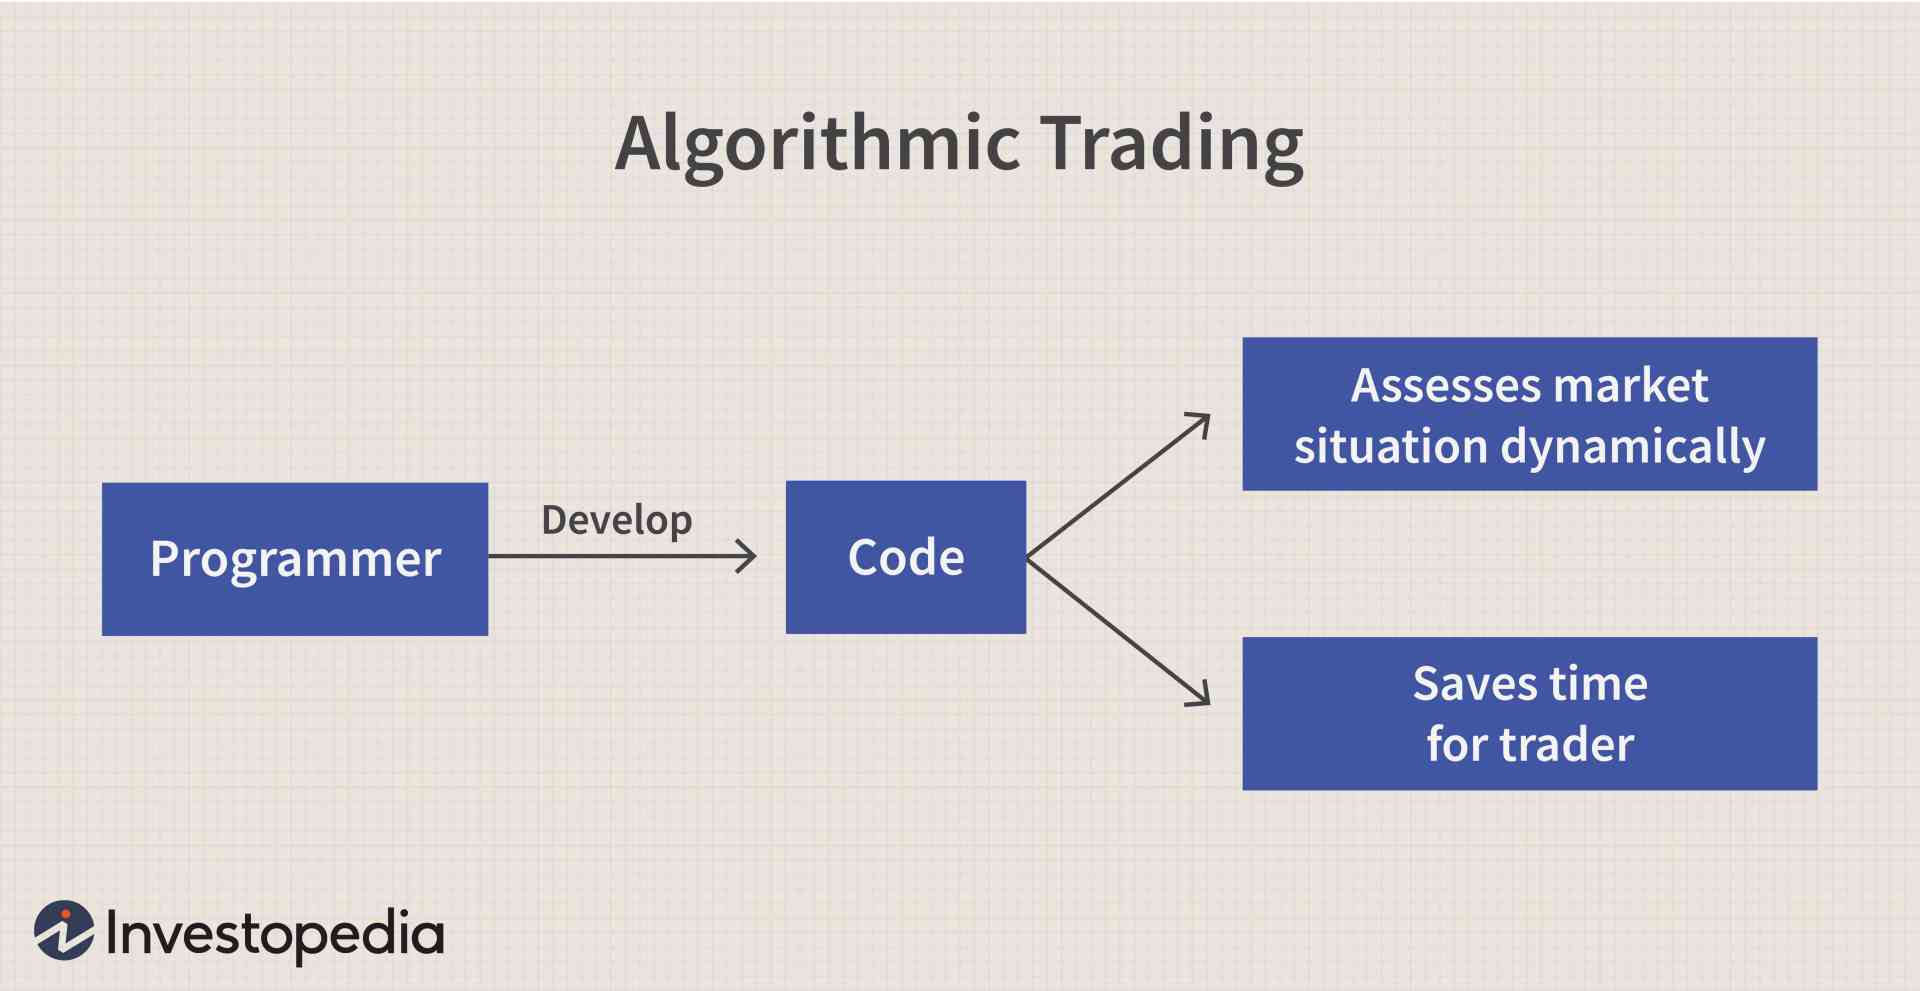 Getting My Best Algorithmic Trading Software, Amibroker Automated ... To Work